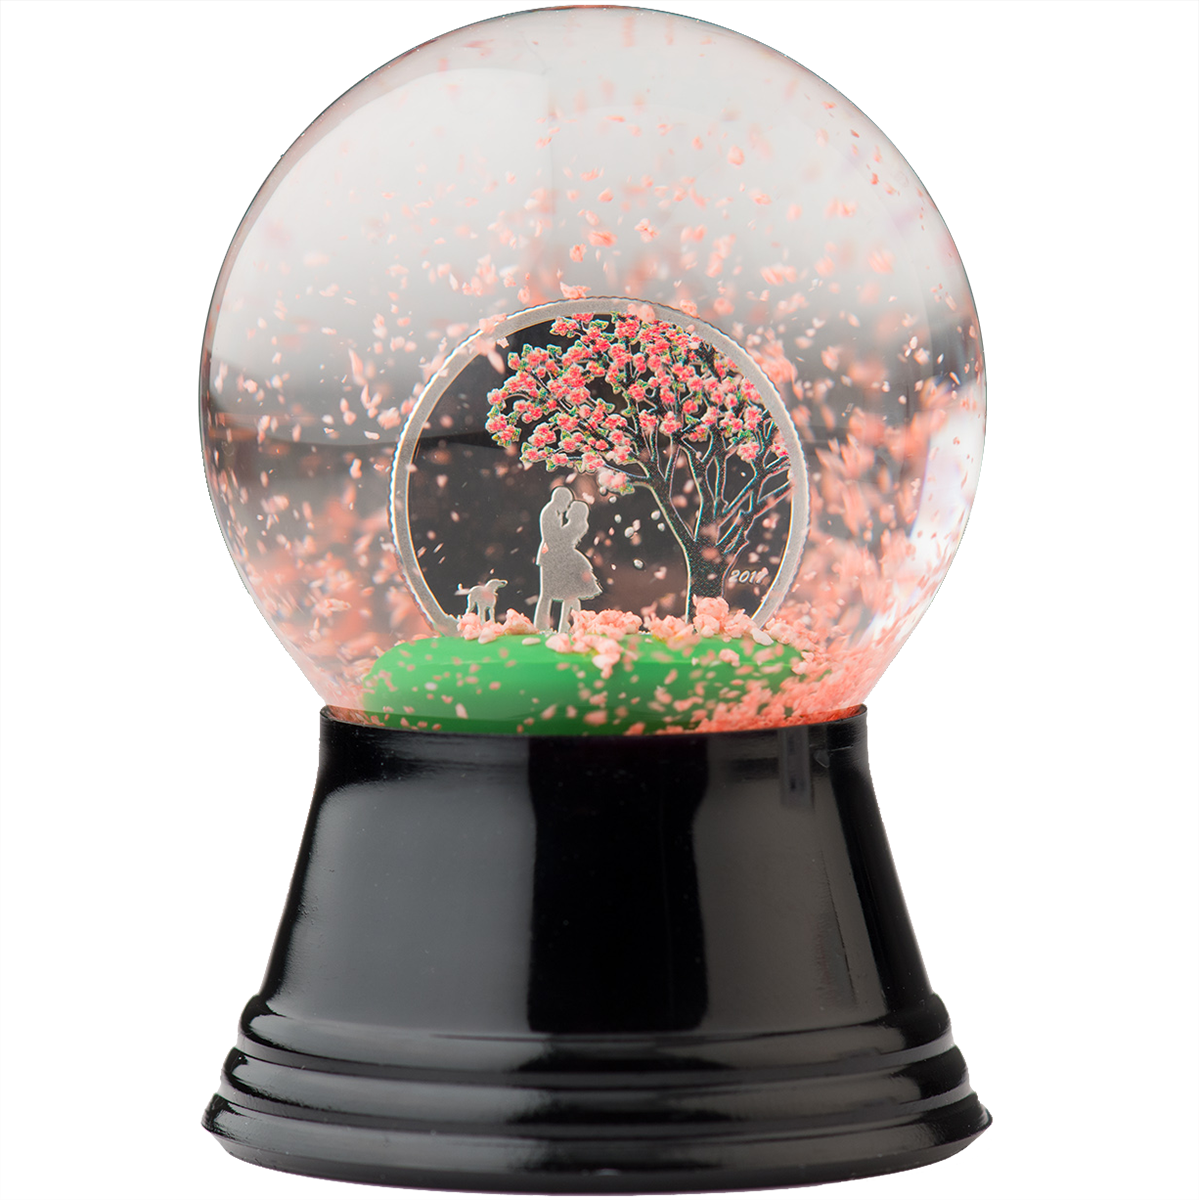 Snow globe with silver coin and cherry blossom flower theme